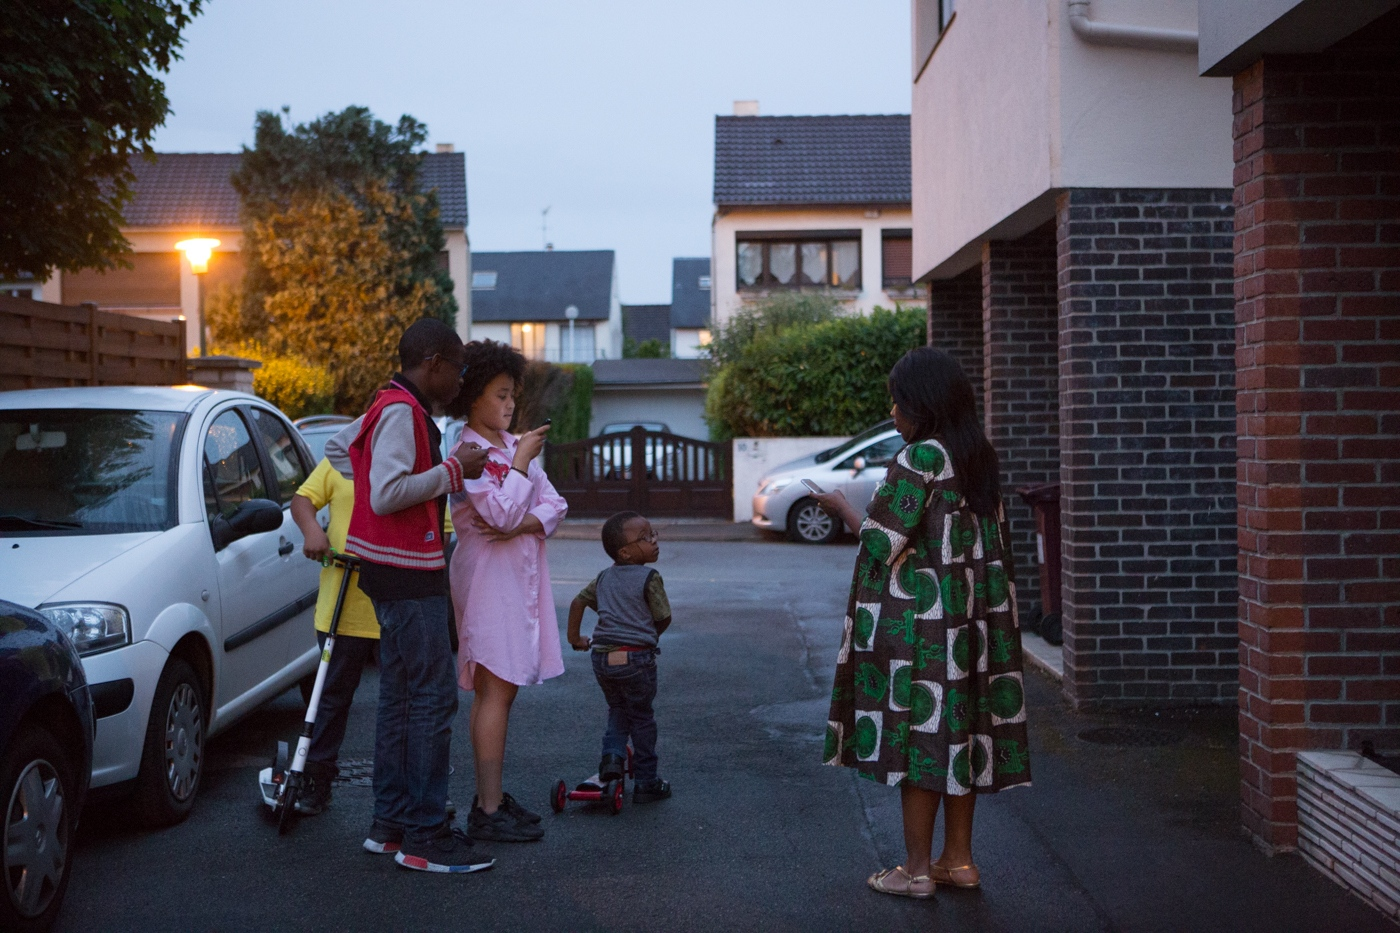 Corinne Kyoto Sy and kids in front of her house during the mourning of her father. For the first generation of afro-french women finding their place as a mixed culture in a traditional country as France is a deep challenge. Raised in the African culture of their parents and with a strong influence from the European environment and education. For their kids, the second generation to come, the feeling of belonging will be more present and natural. Livry-Gargan, Ile de France, France